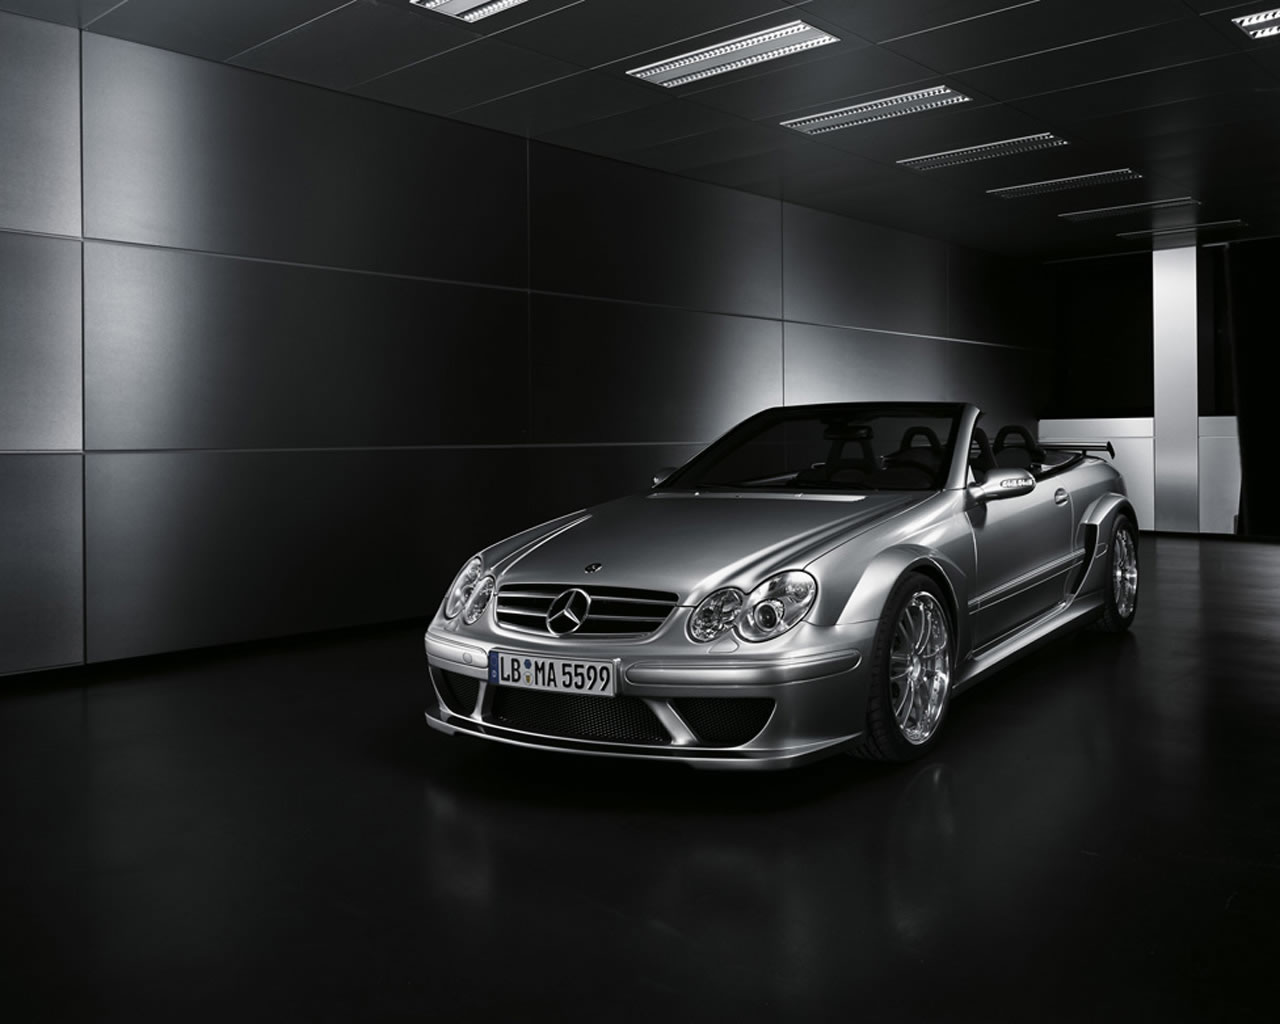 Mercedes-Benz CLK #15